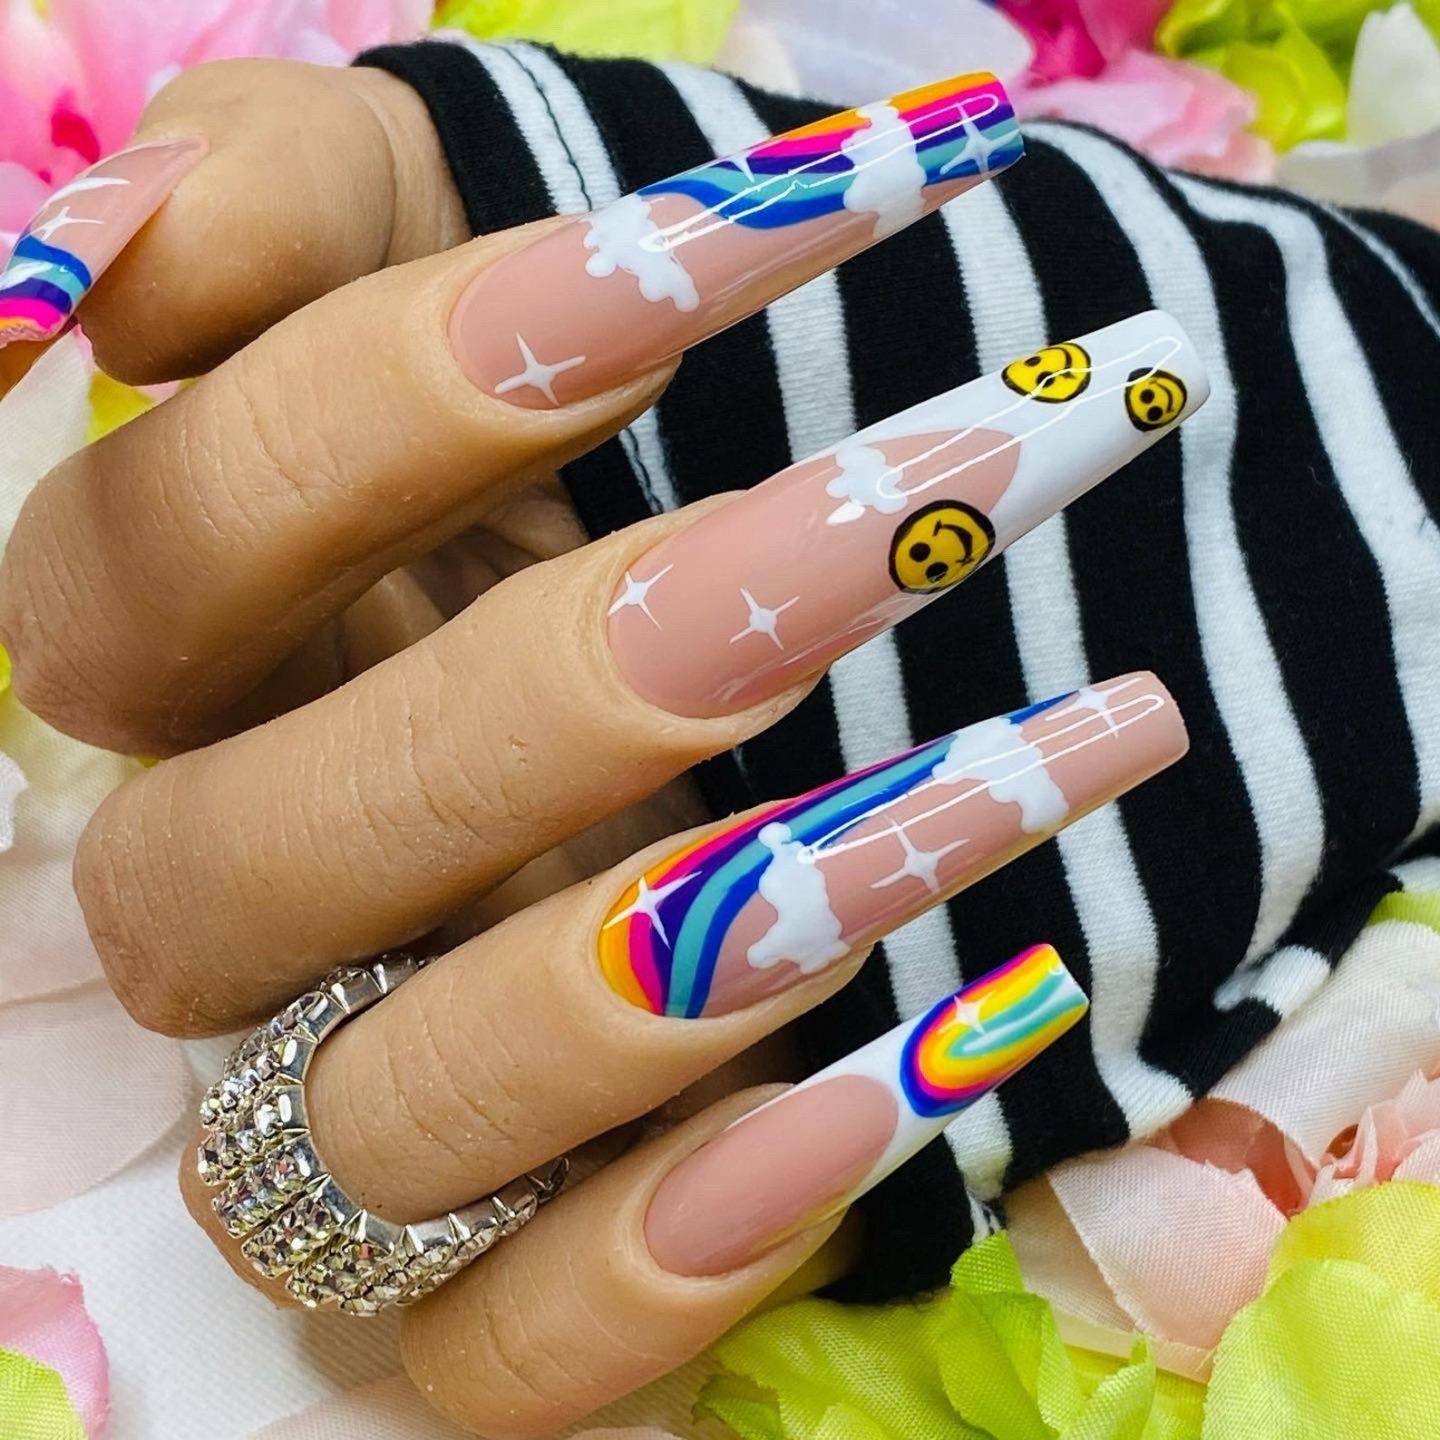 Rainbow nails with smile emojis in long acrylic coffin shape